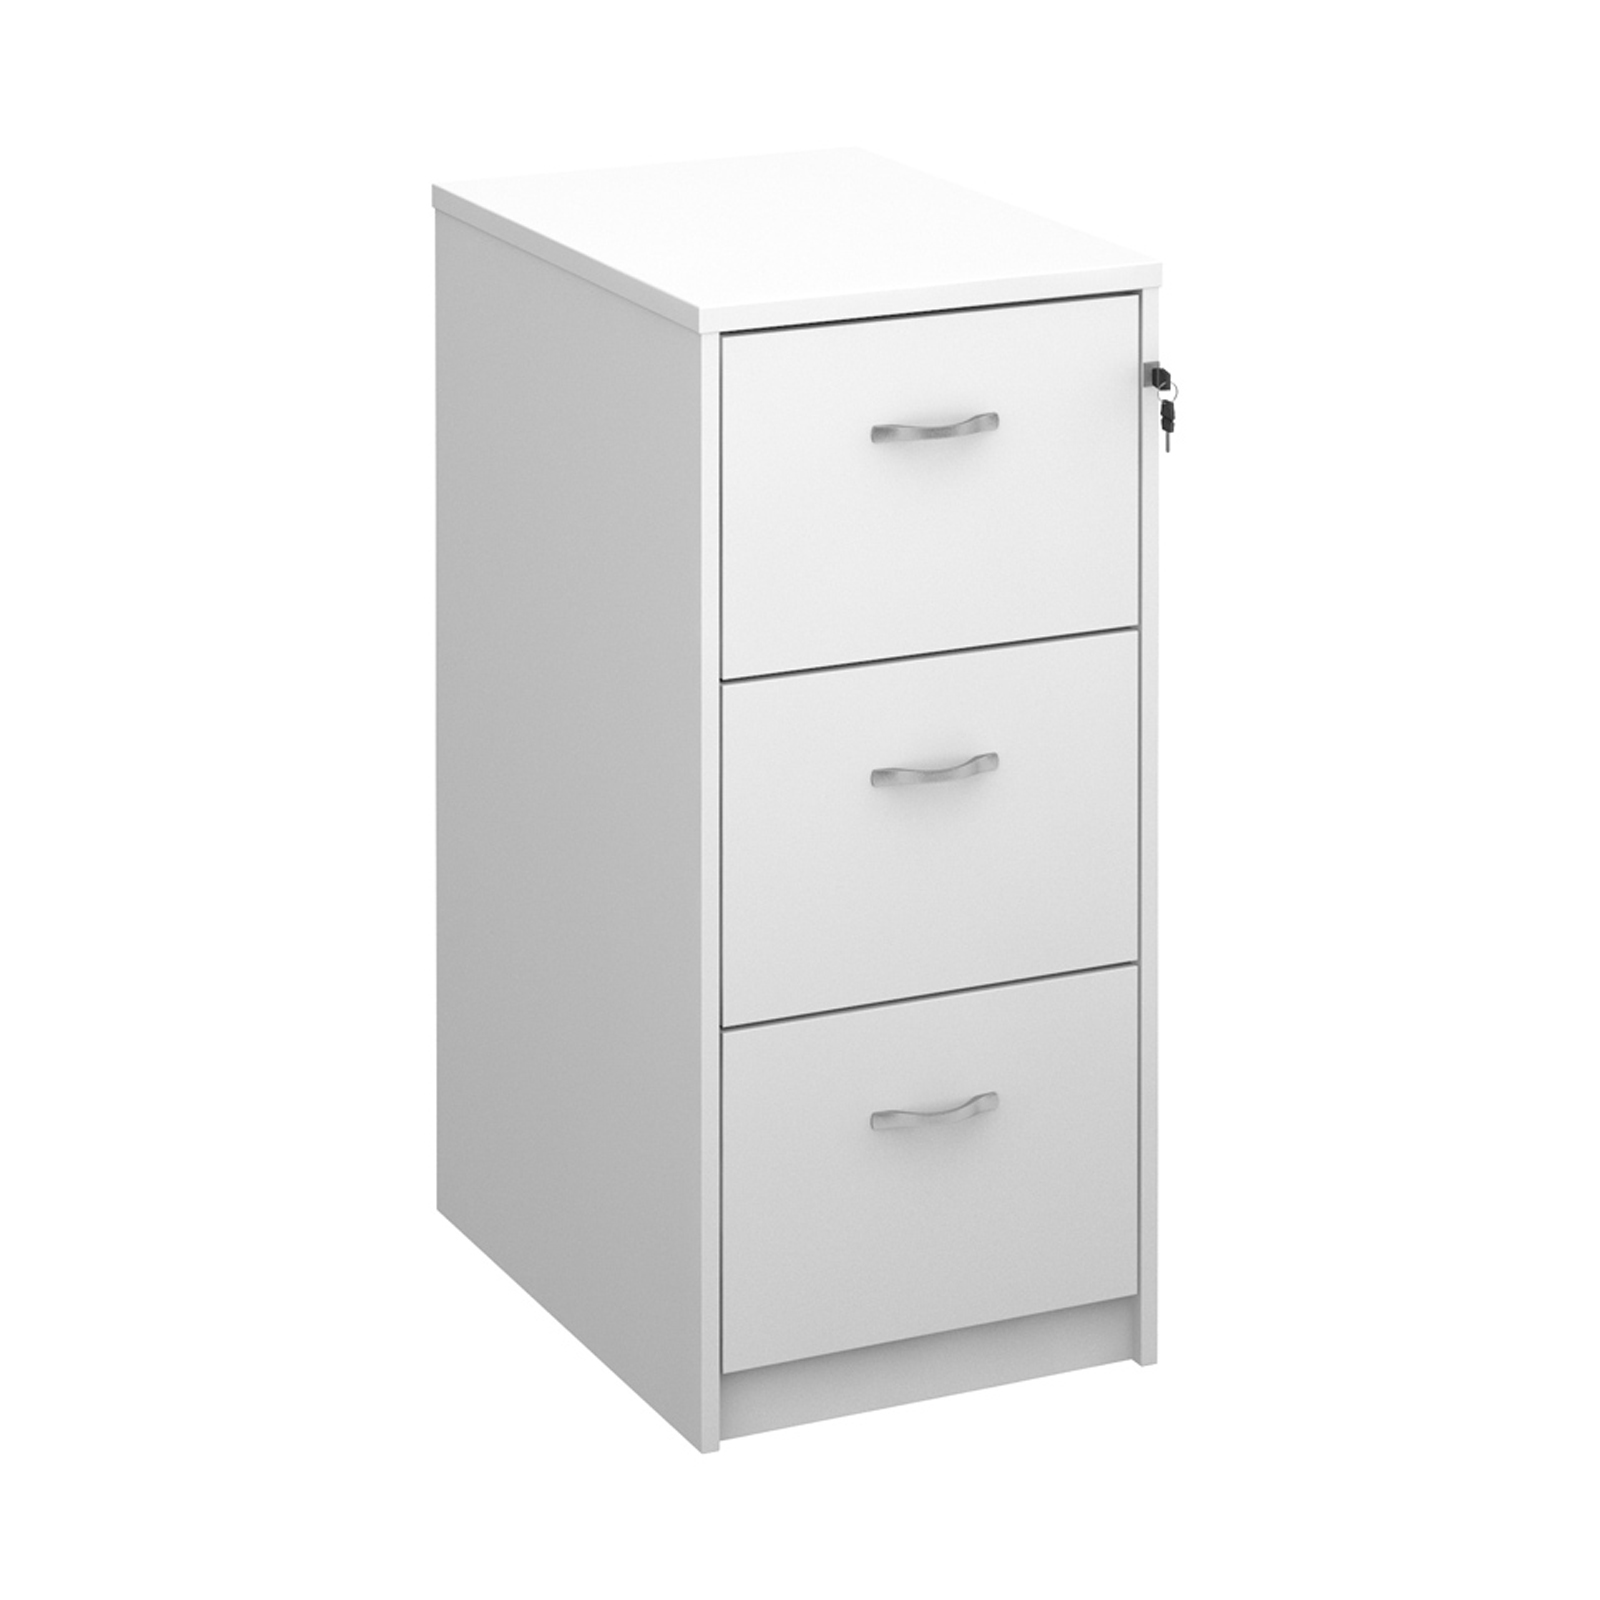 Wood Wooden 3 drawer filing cabinet with silver handles 1045mm high - white